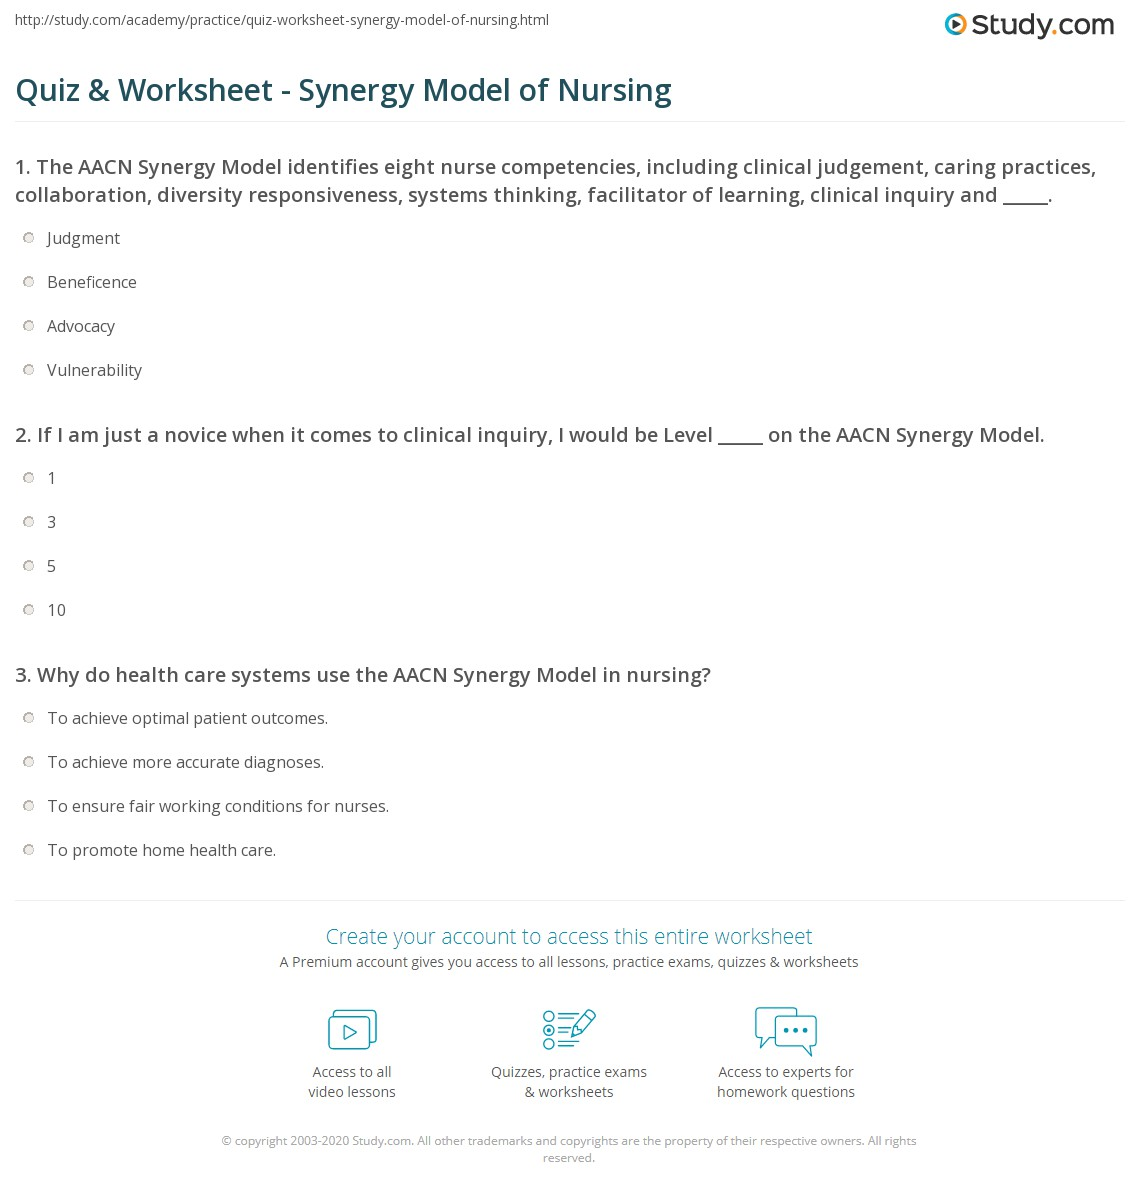 history of nursing worksheet History of nursing research worksheet history of nursing research worksheet there have been many influential publications, agencies, and people in the field of nursing research write 1–3 sentences in each cell of the table below.